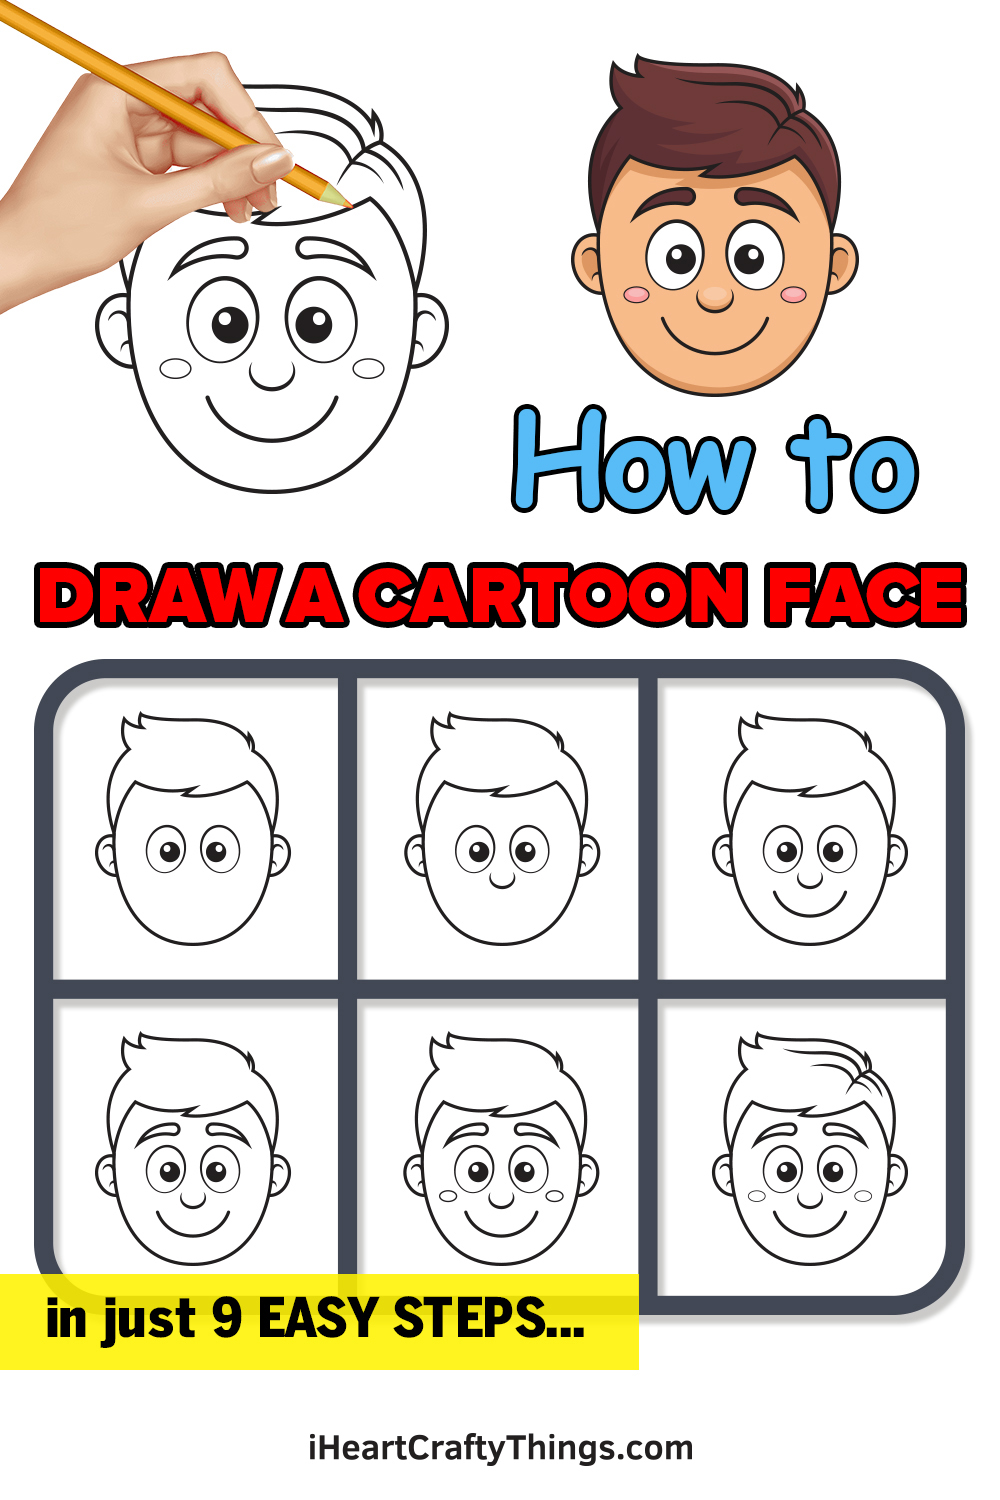 How to Draw a Cartoon Face in 9 Steps